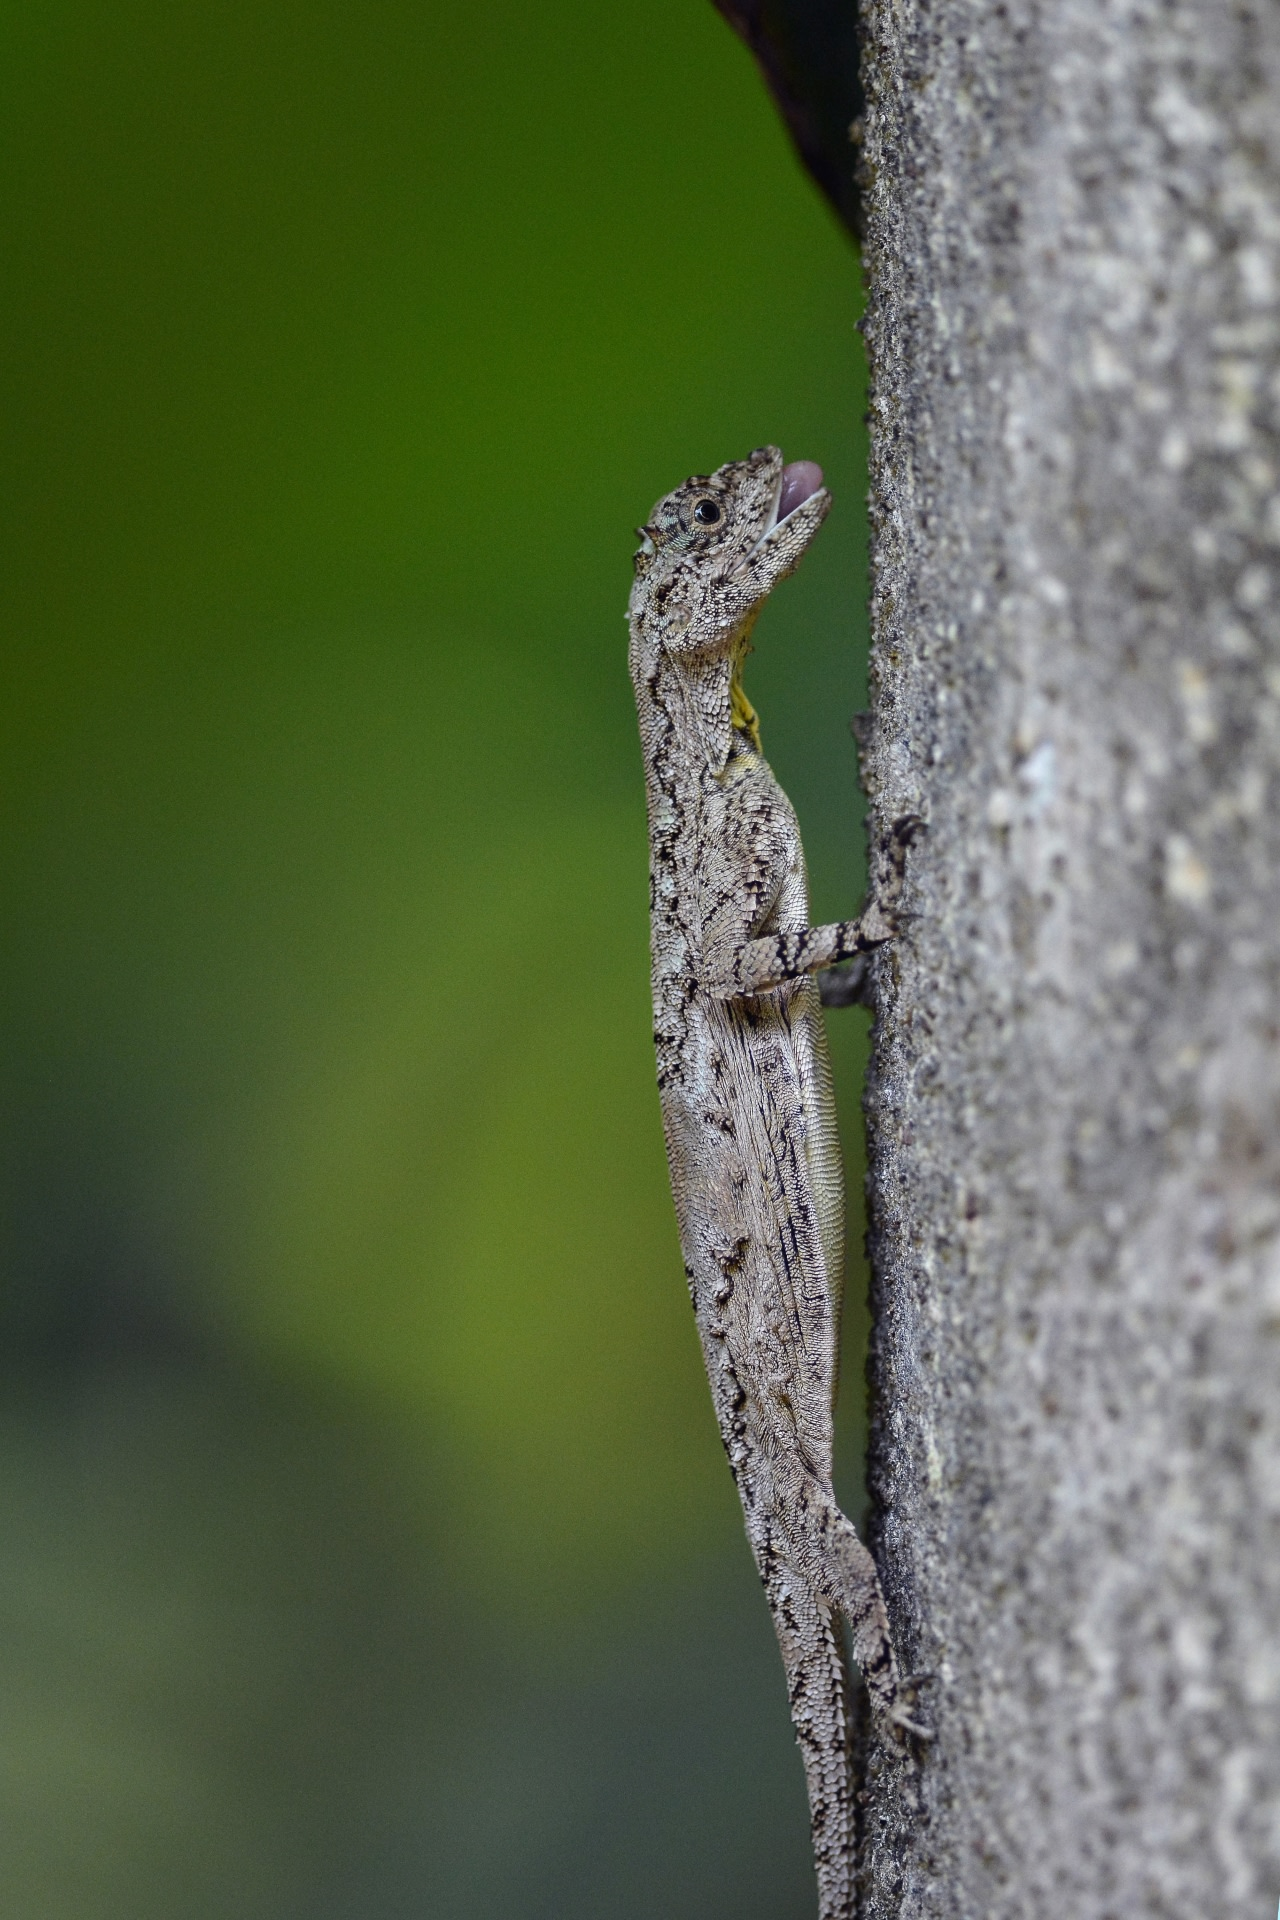 The draco lizard will often position itself on a tree trunk, beside a trail of ants on the move, ready to gobble up its favourite prey. Photo: Sudheendr Bhat